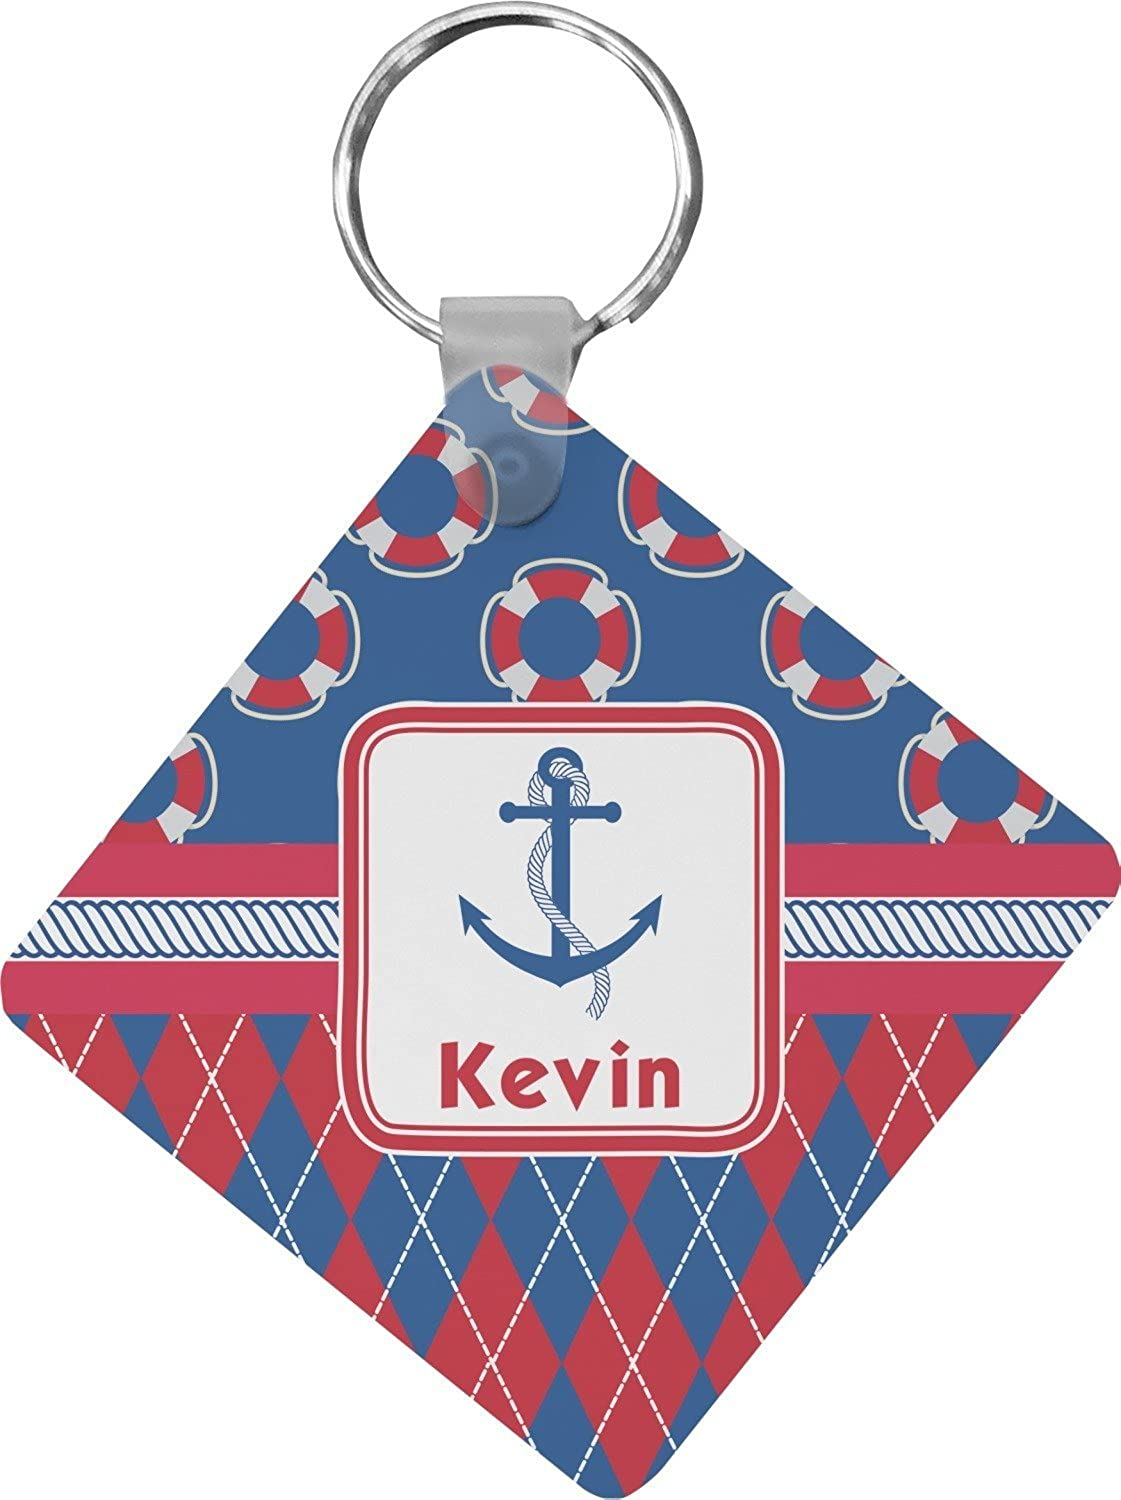 Buoy & Argyle Print Diamond Key Chain (Personalized)